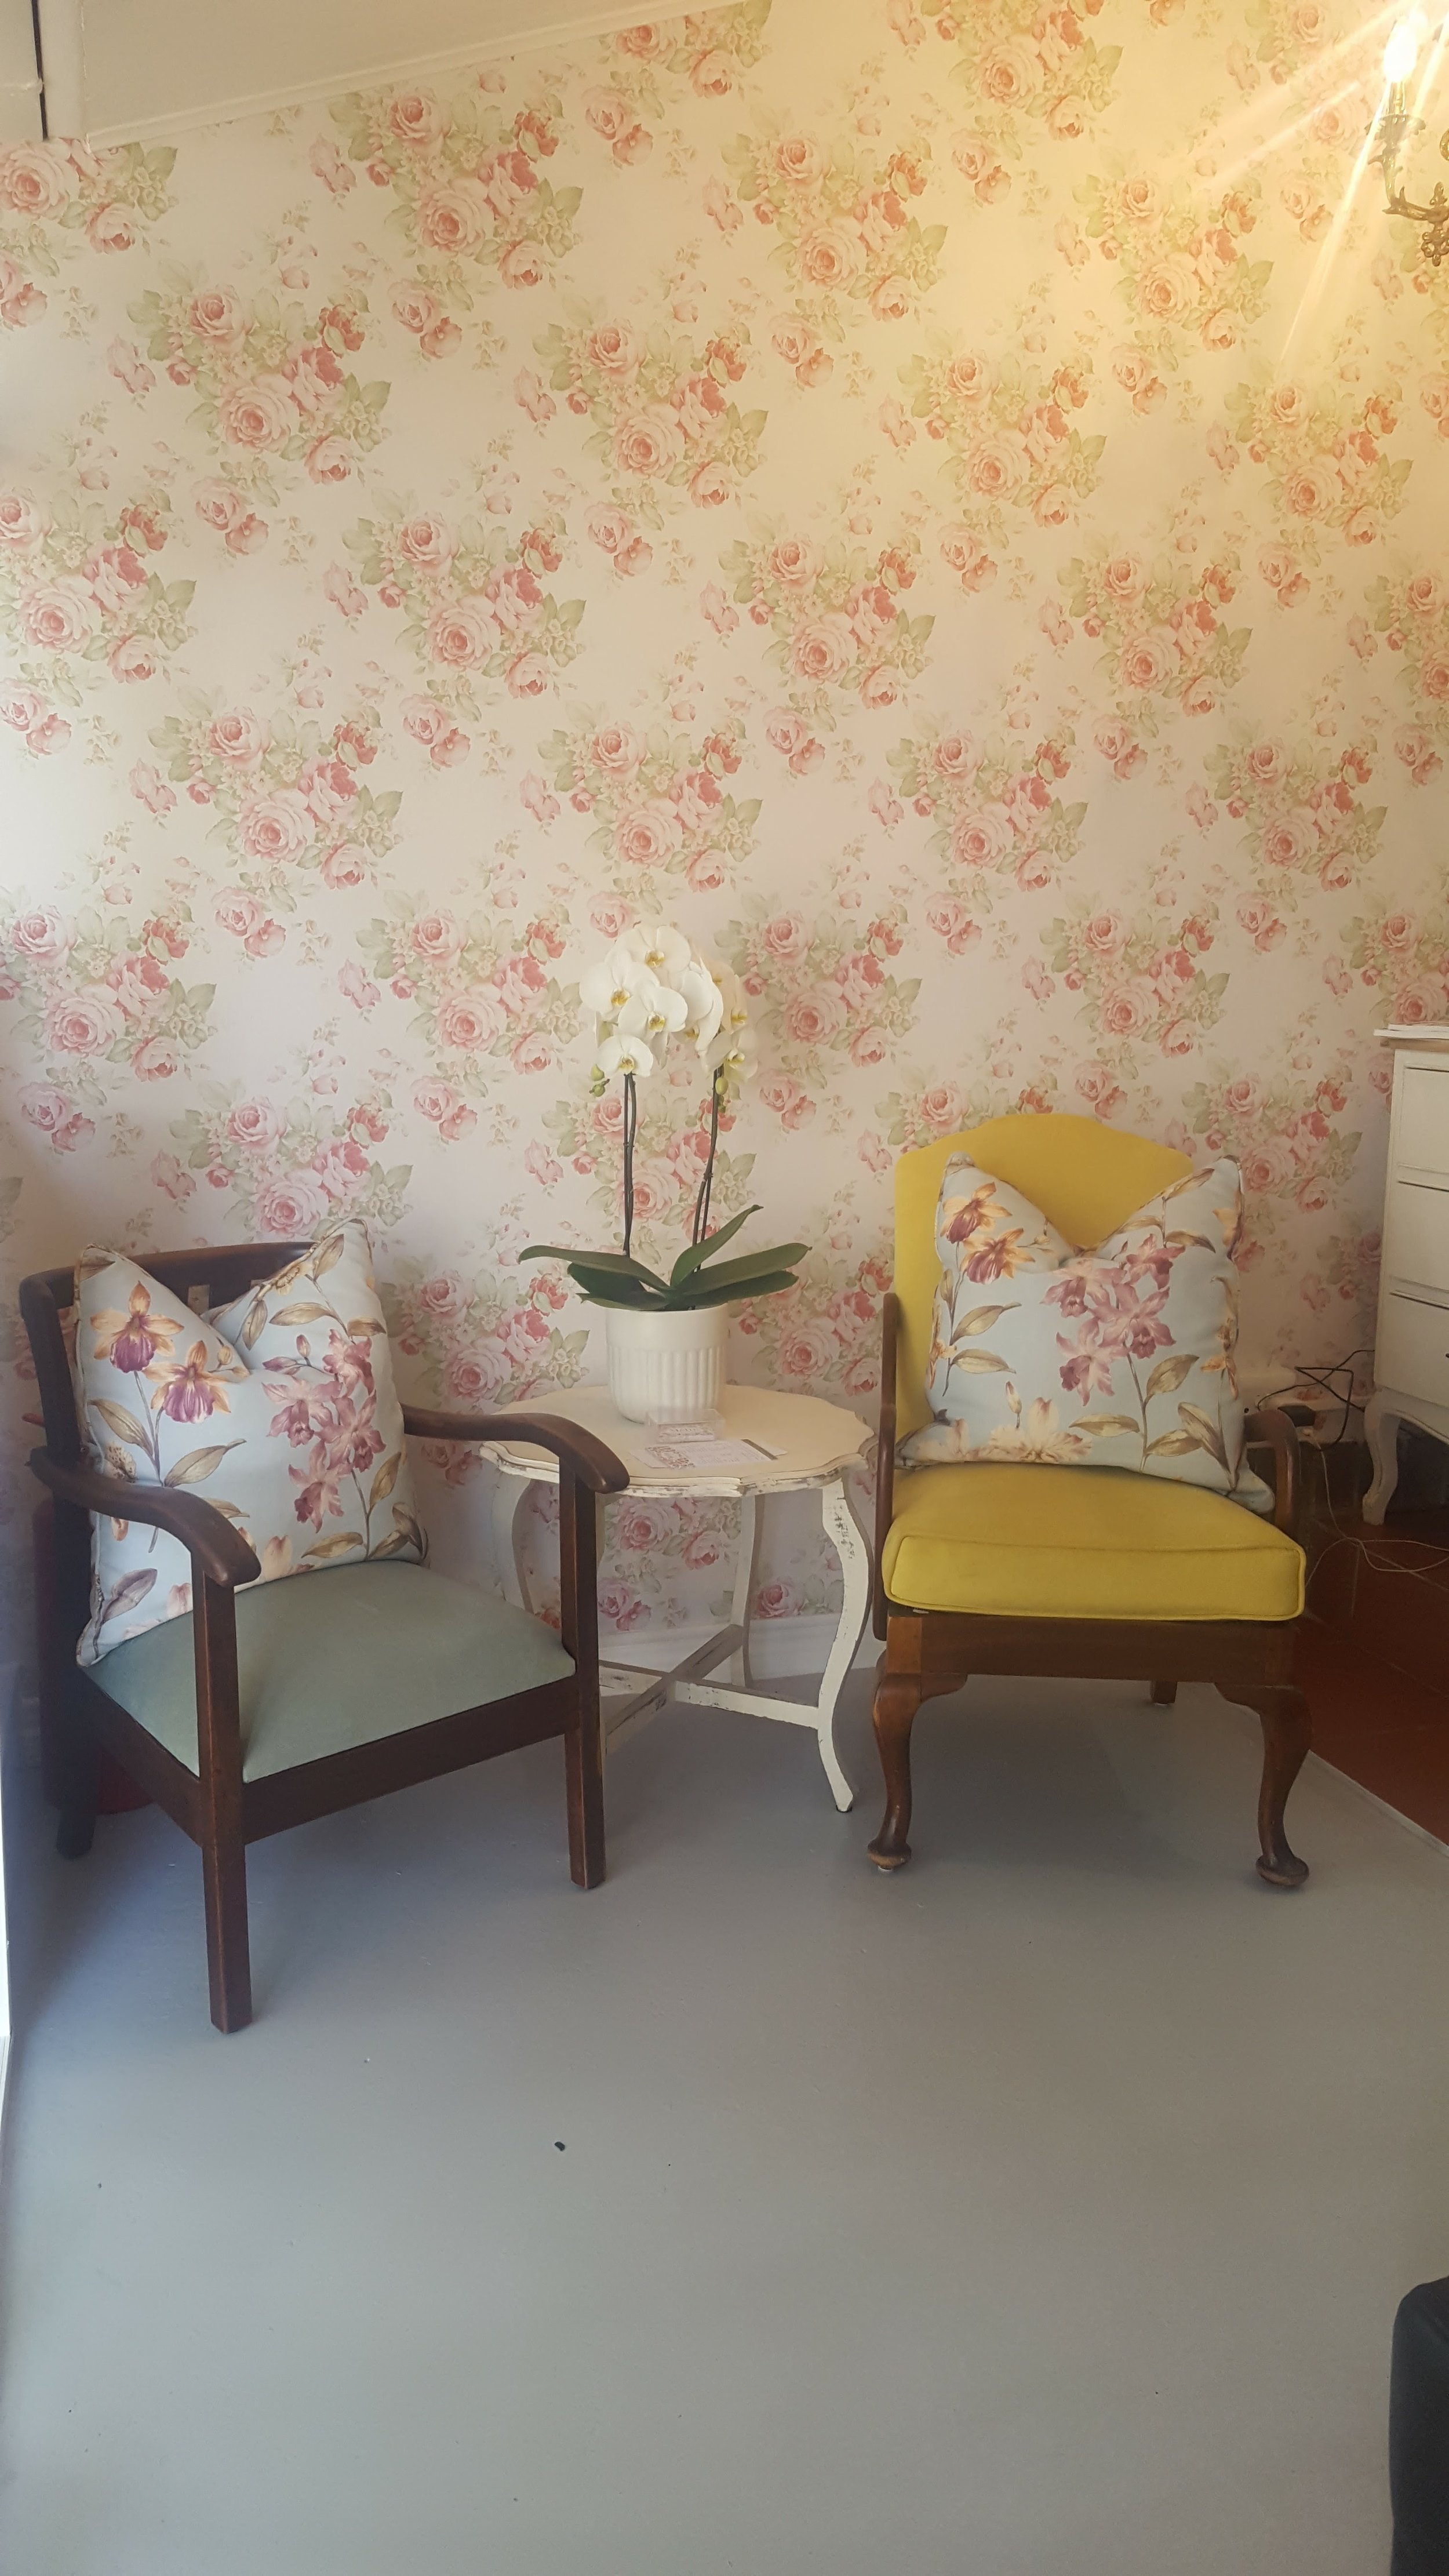 Two green velvet chairs in front of a floral wallpaper